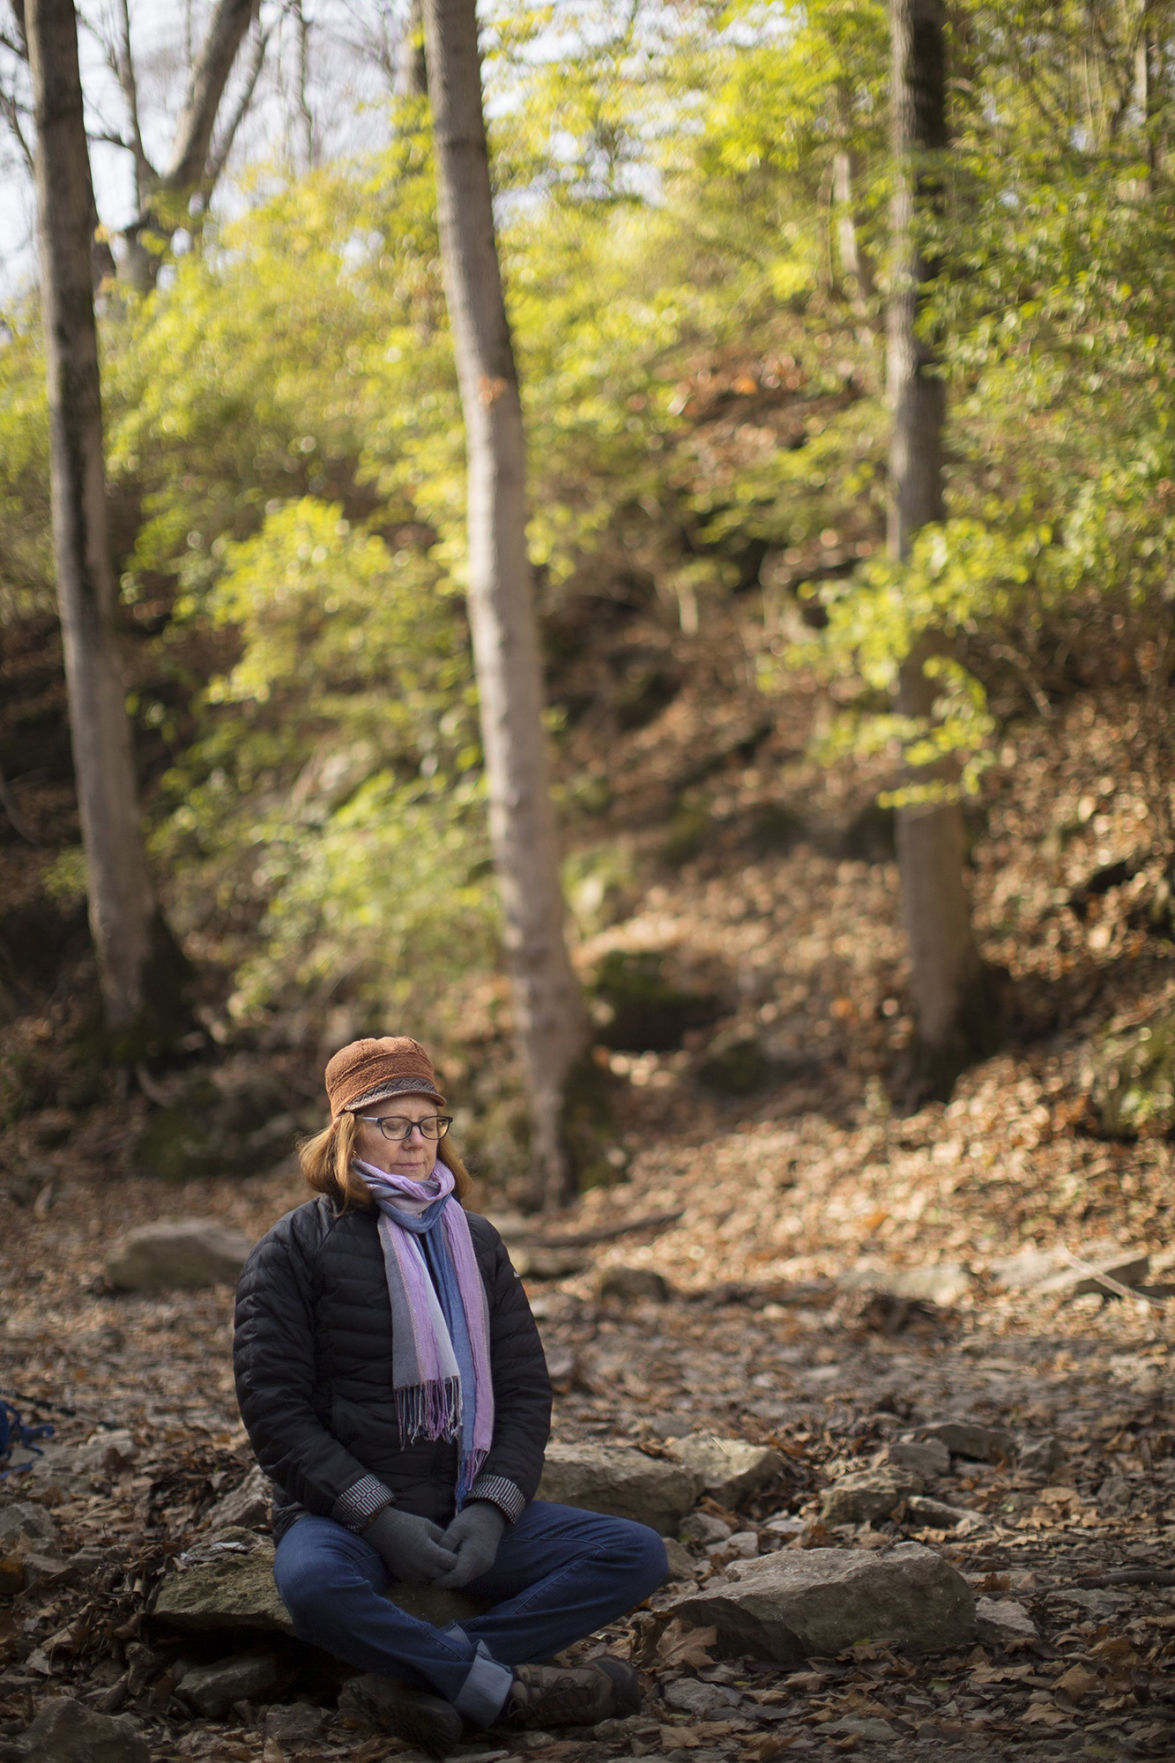 'Forest bathing' walks encourage deep connection to nature